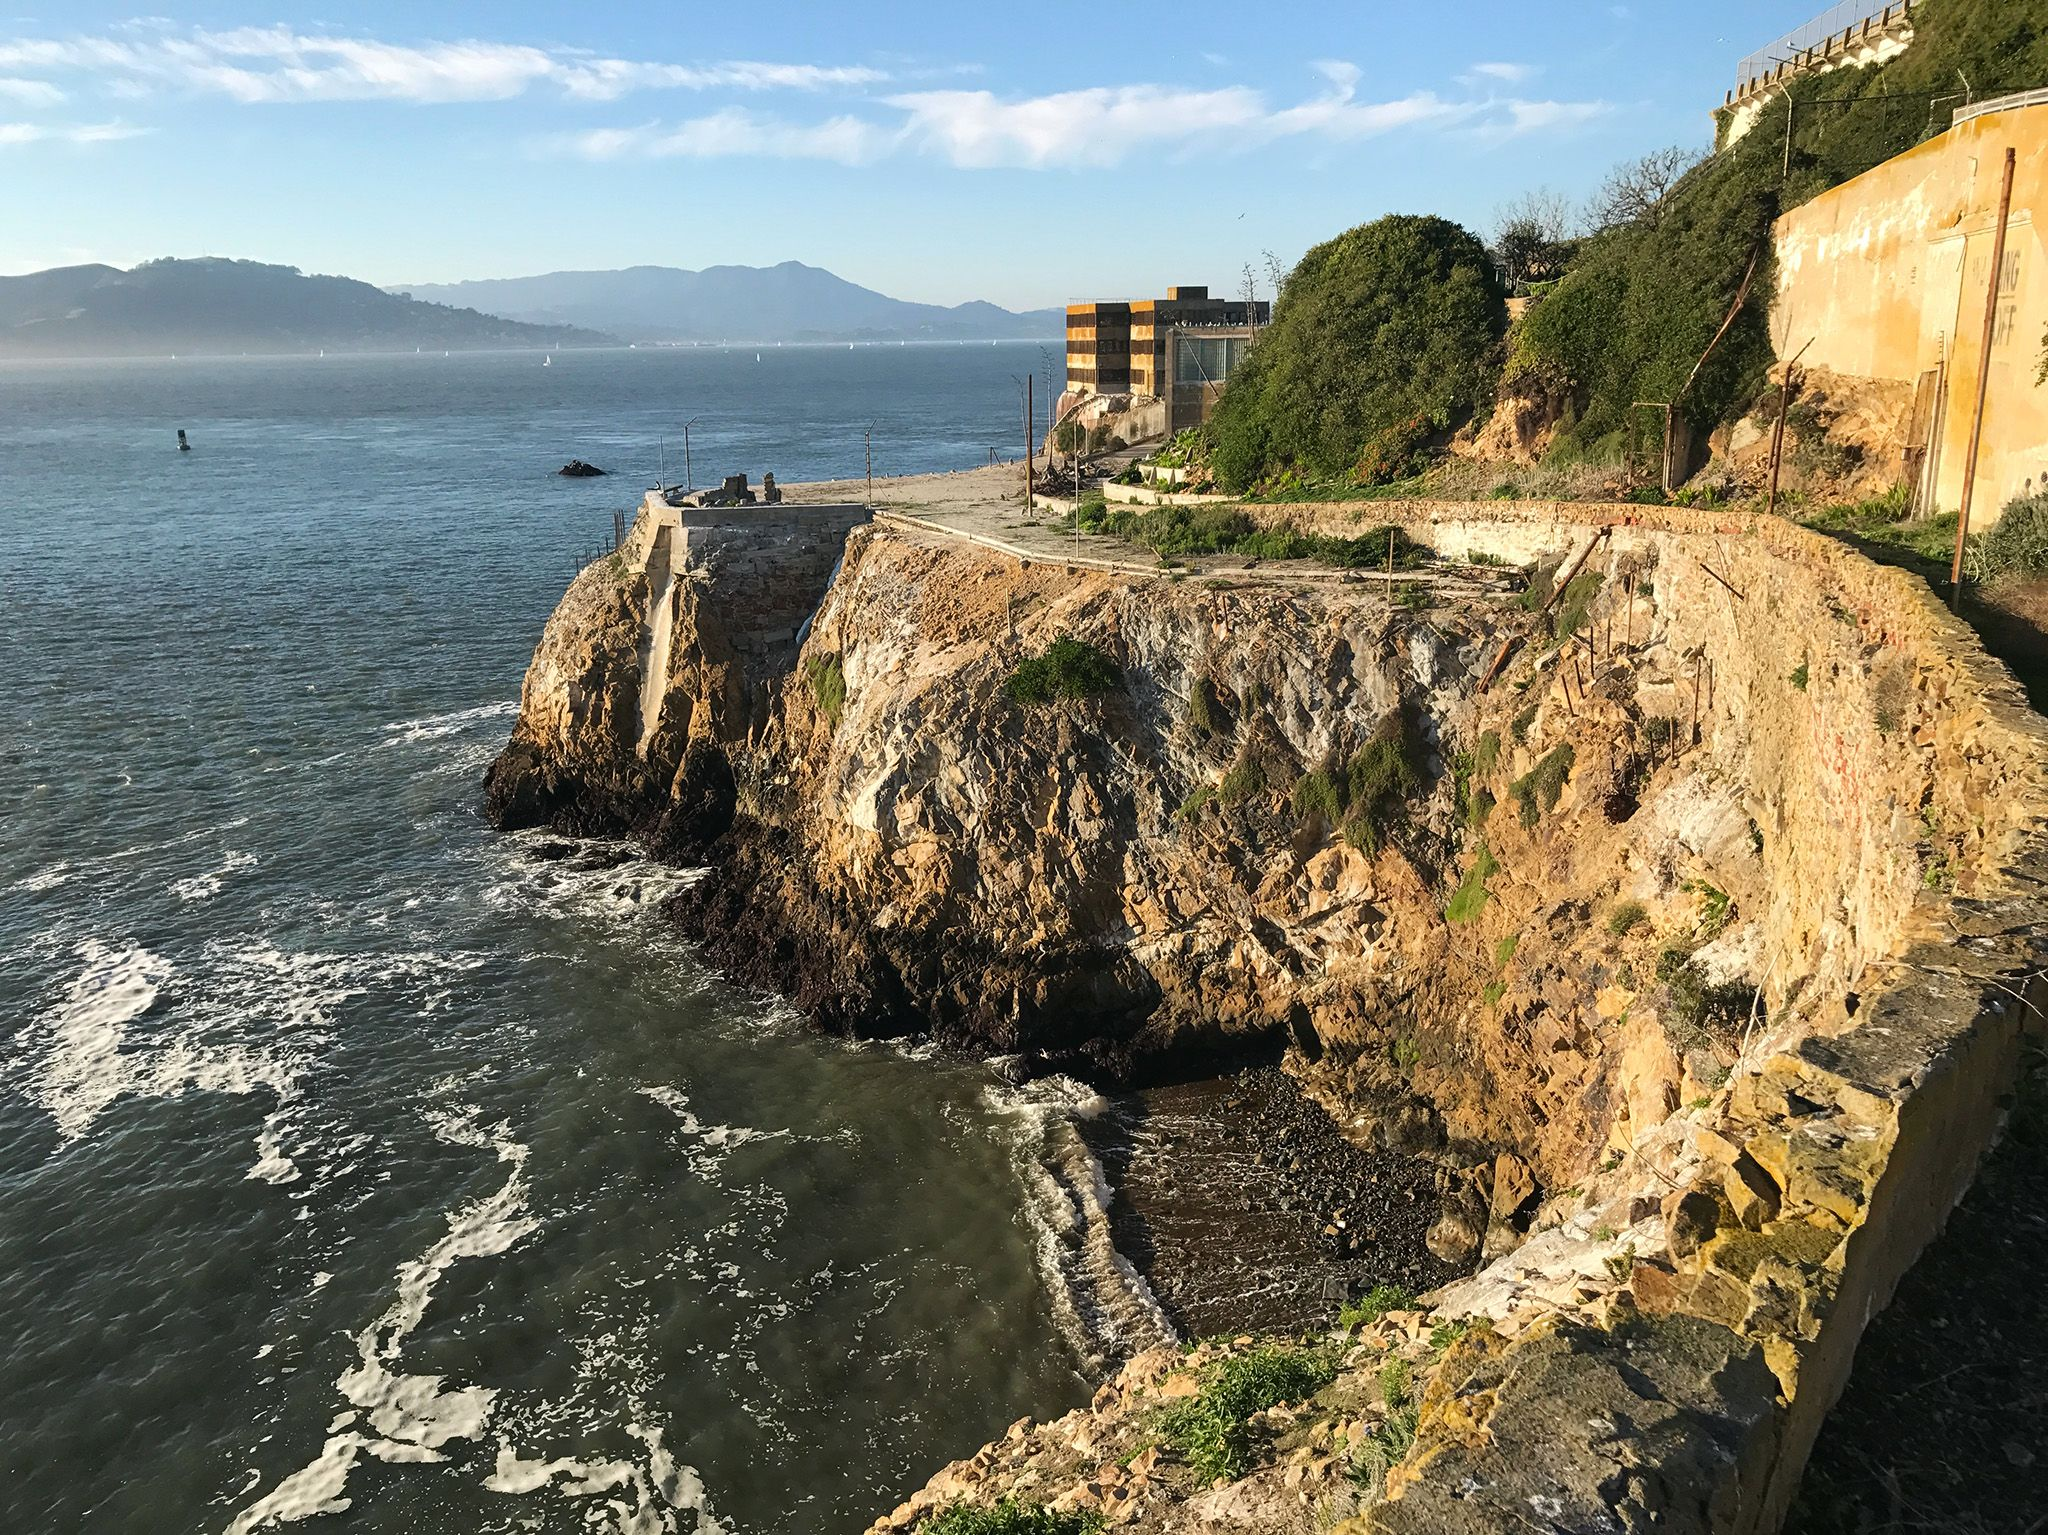 California:  Cliffs on the western side of Alcatraz Island. This image is from Drain Alcatraz. [Photo of the day - December 2017]